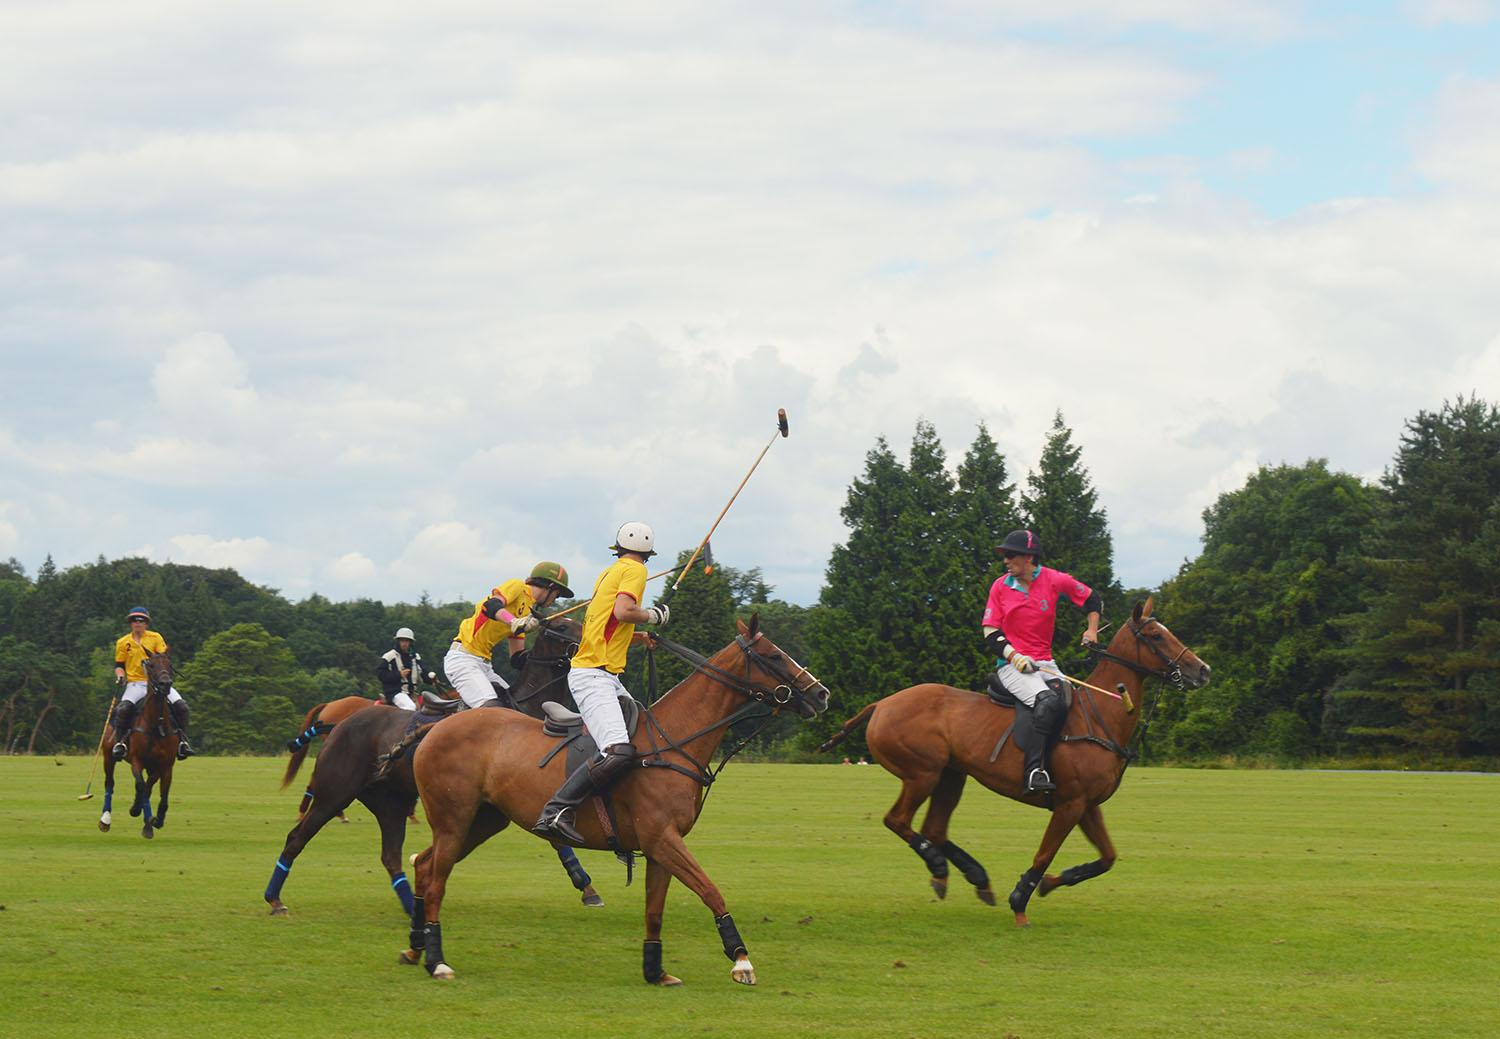 review Cirencester Polo club